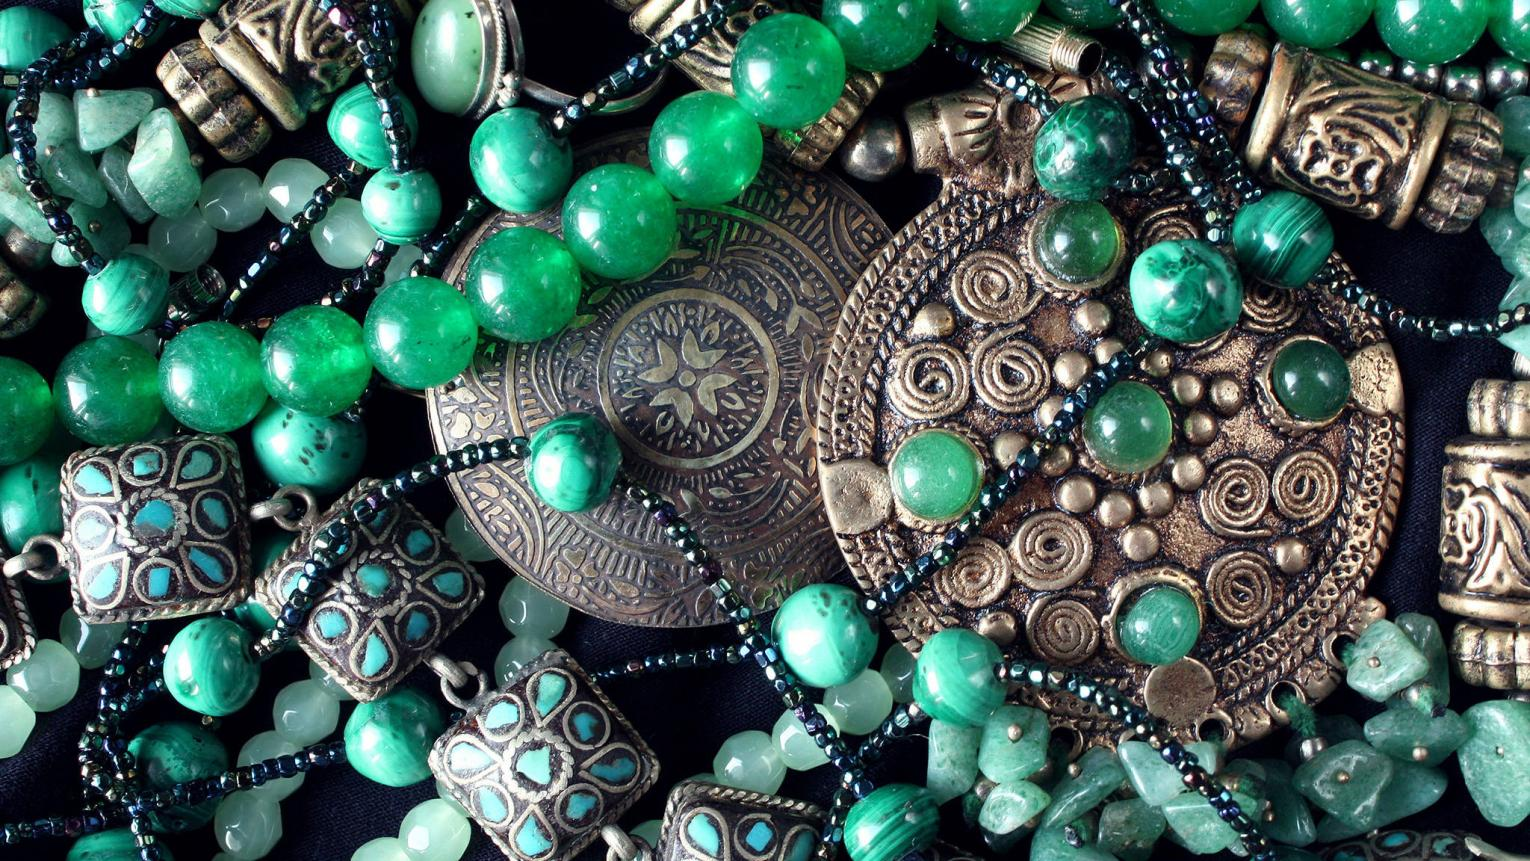 Emerald, turquoise and bronze jewels